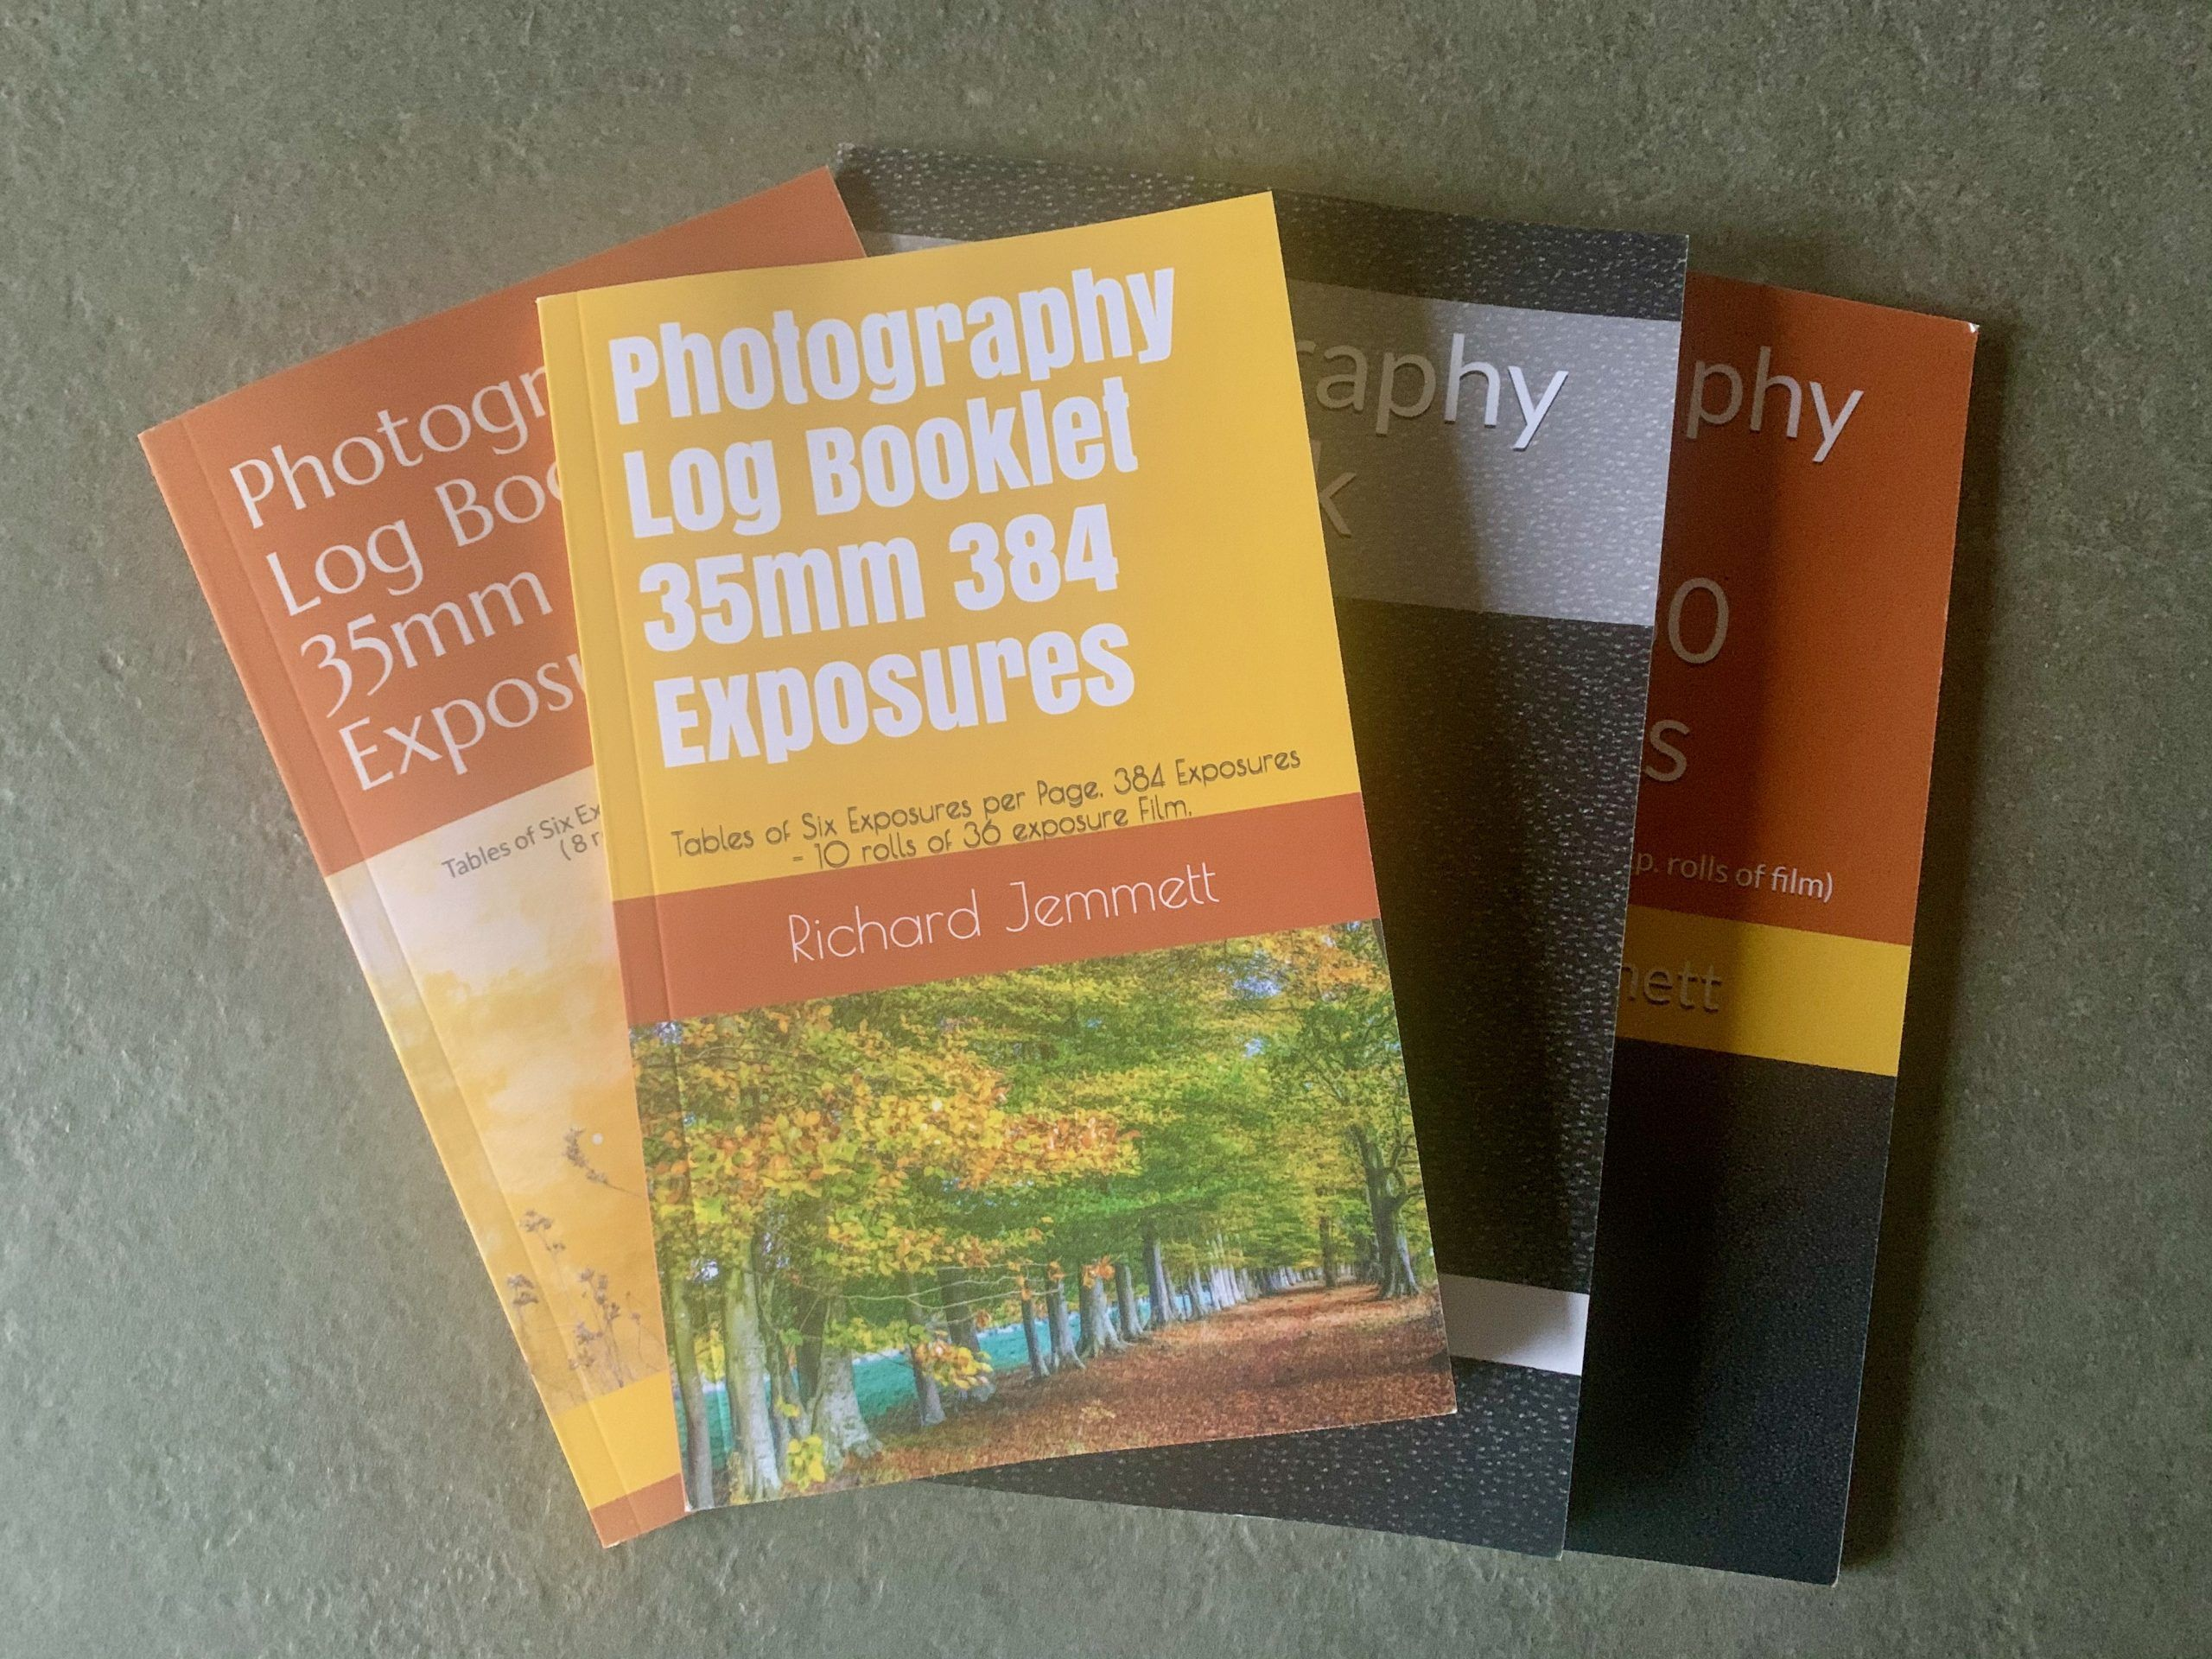 Group of Photography Log Books